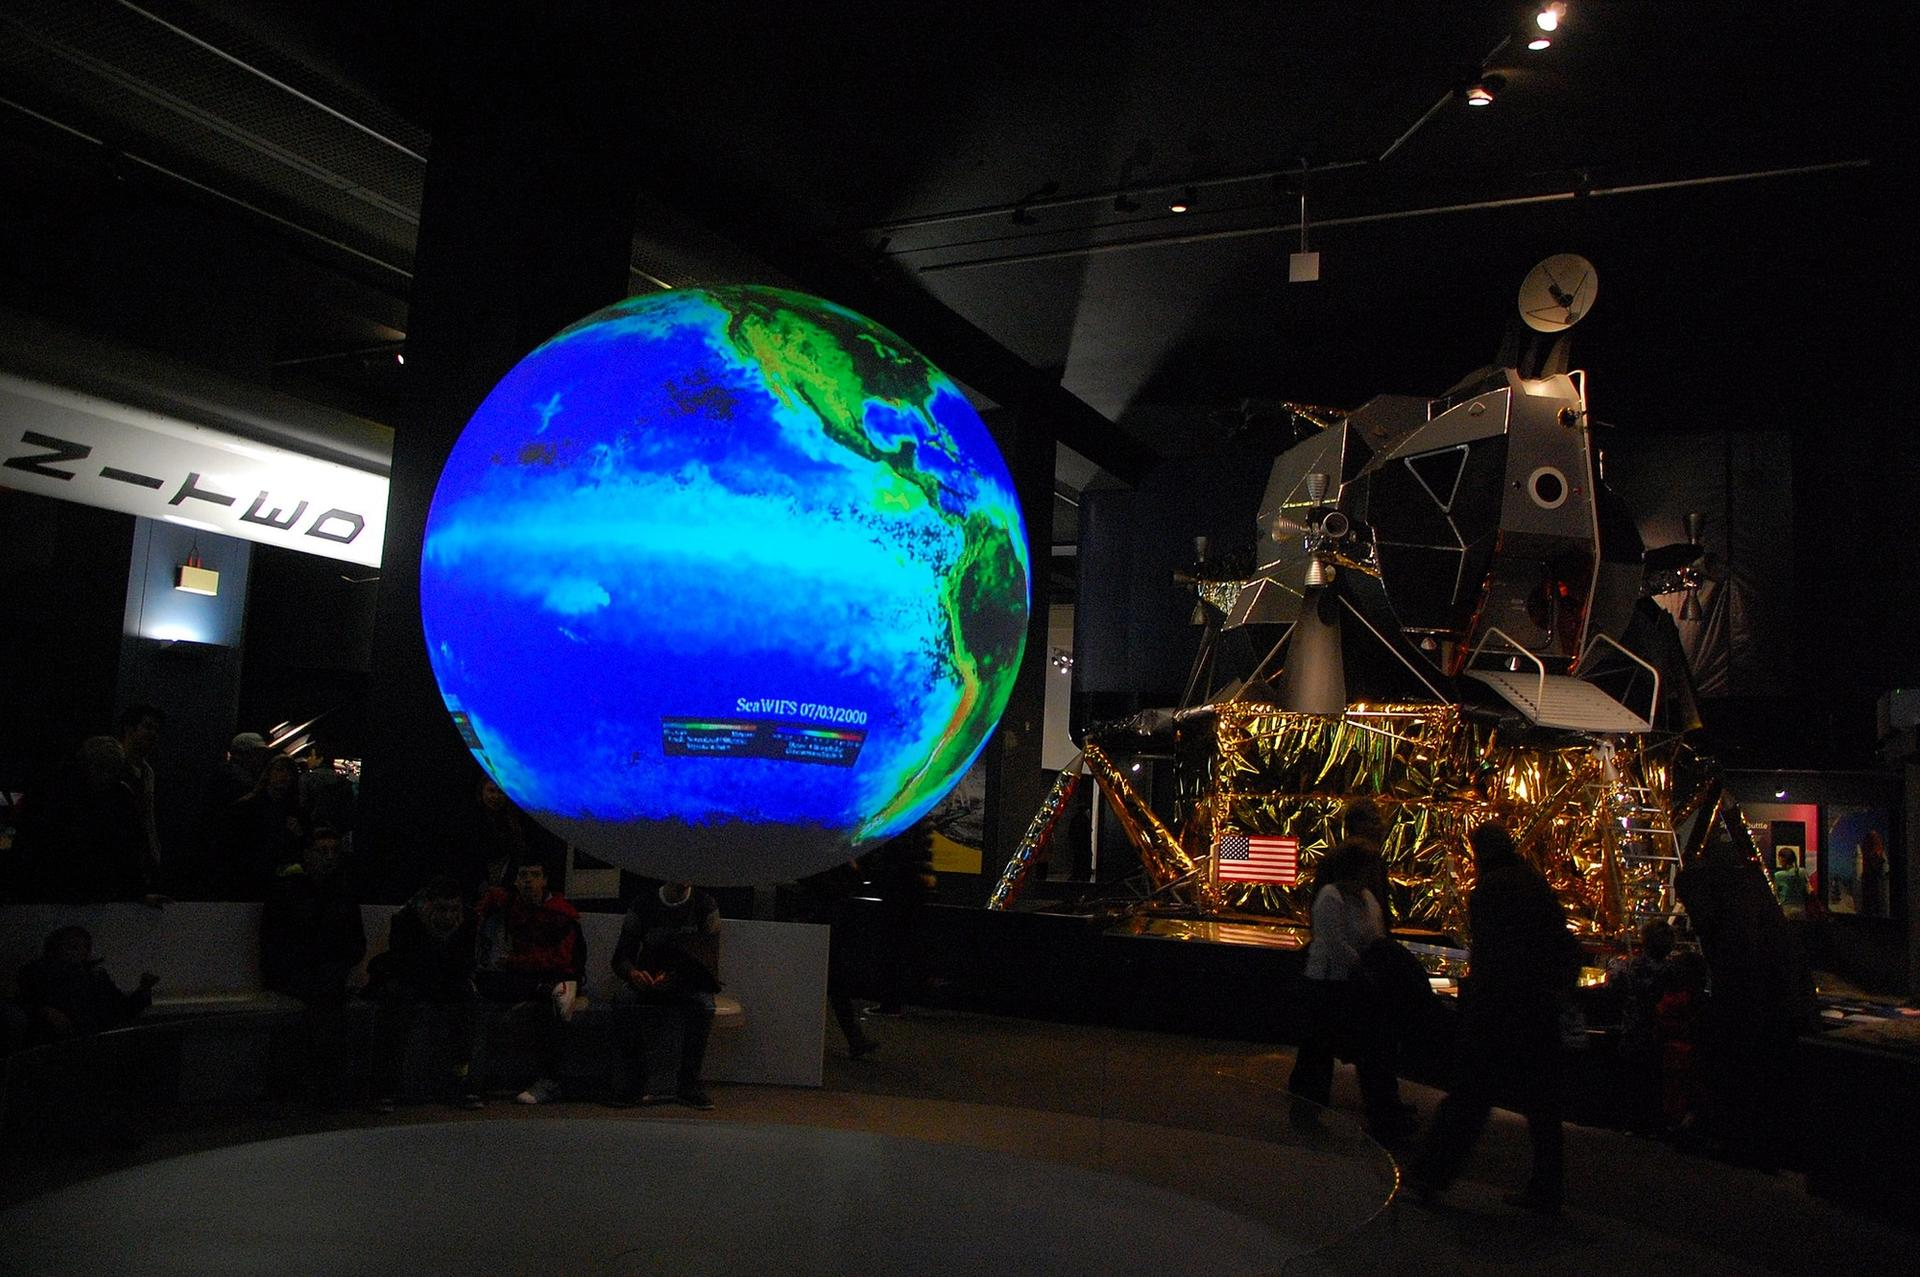 The UK's Science Museum Group is hosting a series of online Climate Talks Photo: London's Science Museum, Rodrigo Menezes (Ironman br)